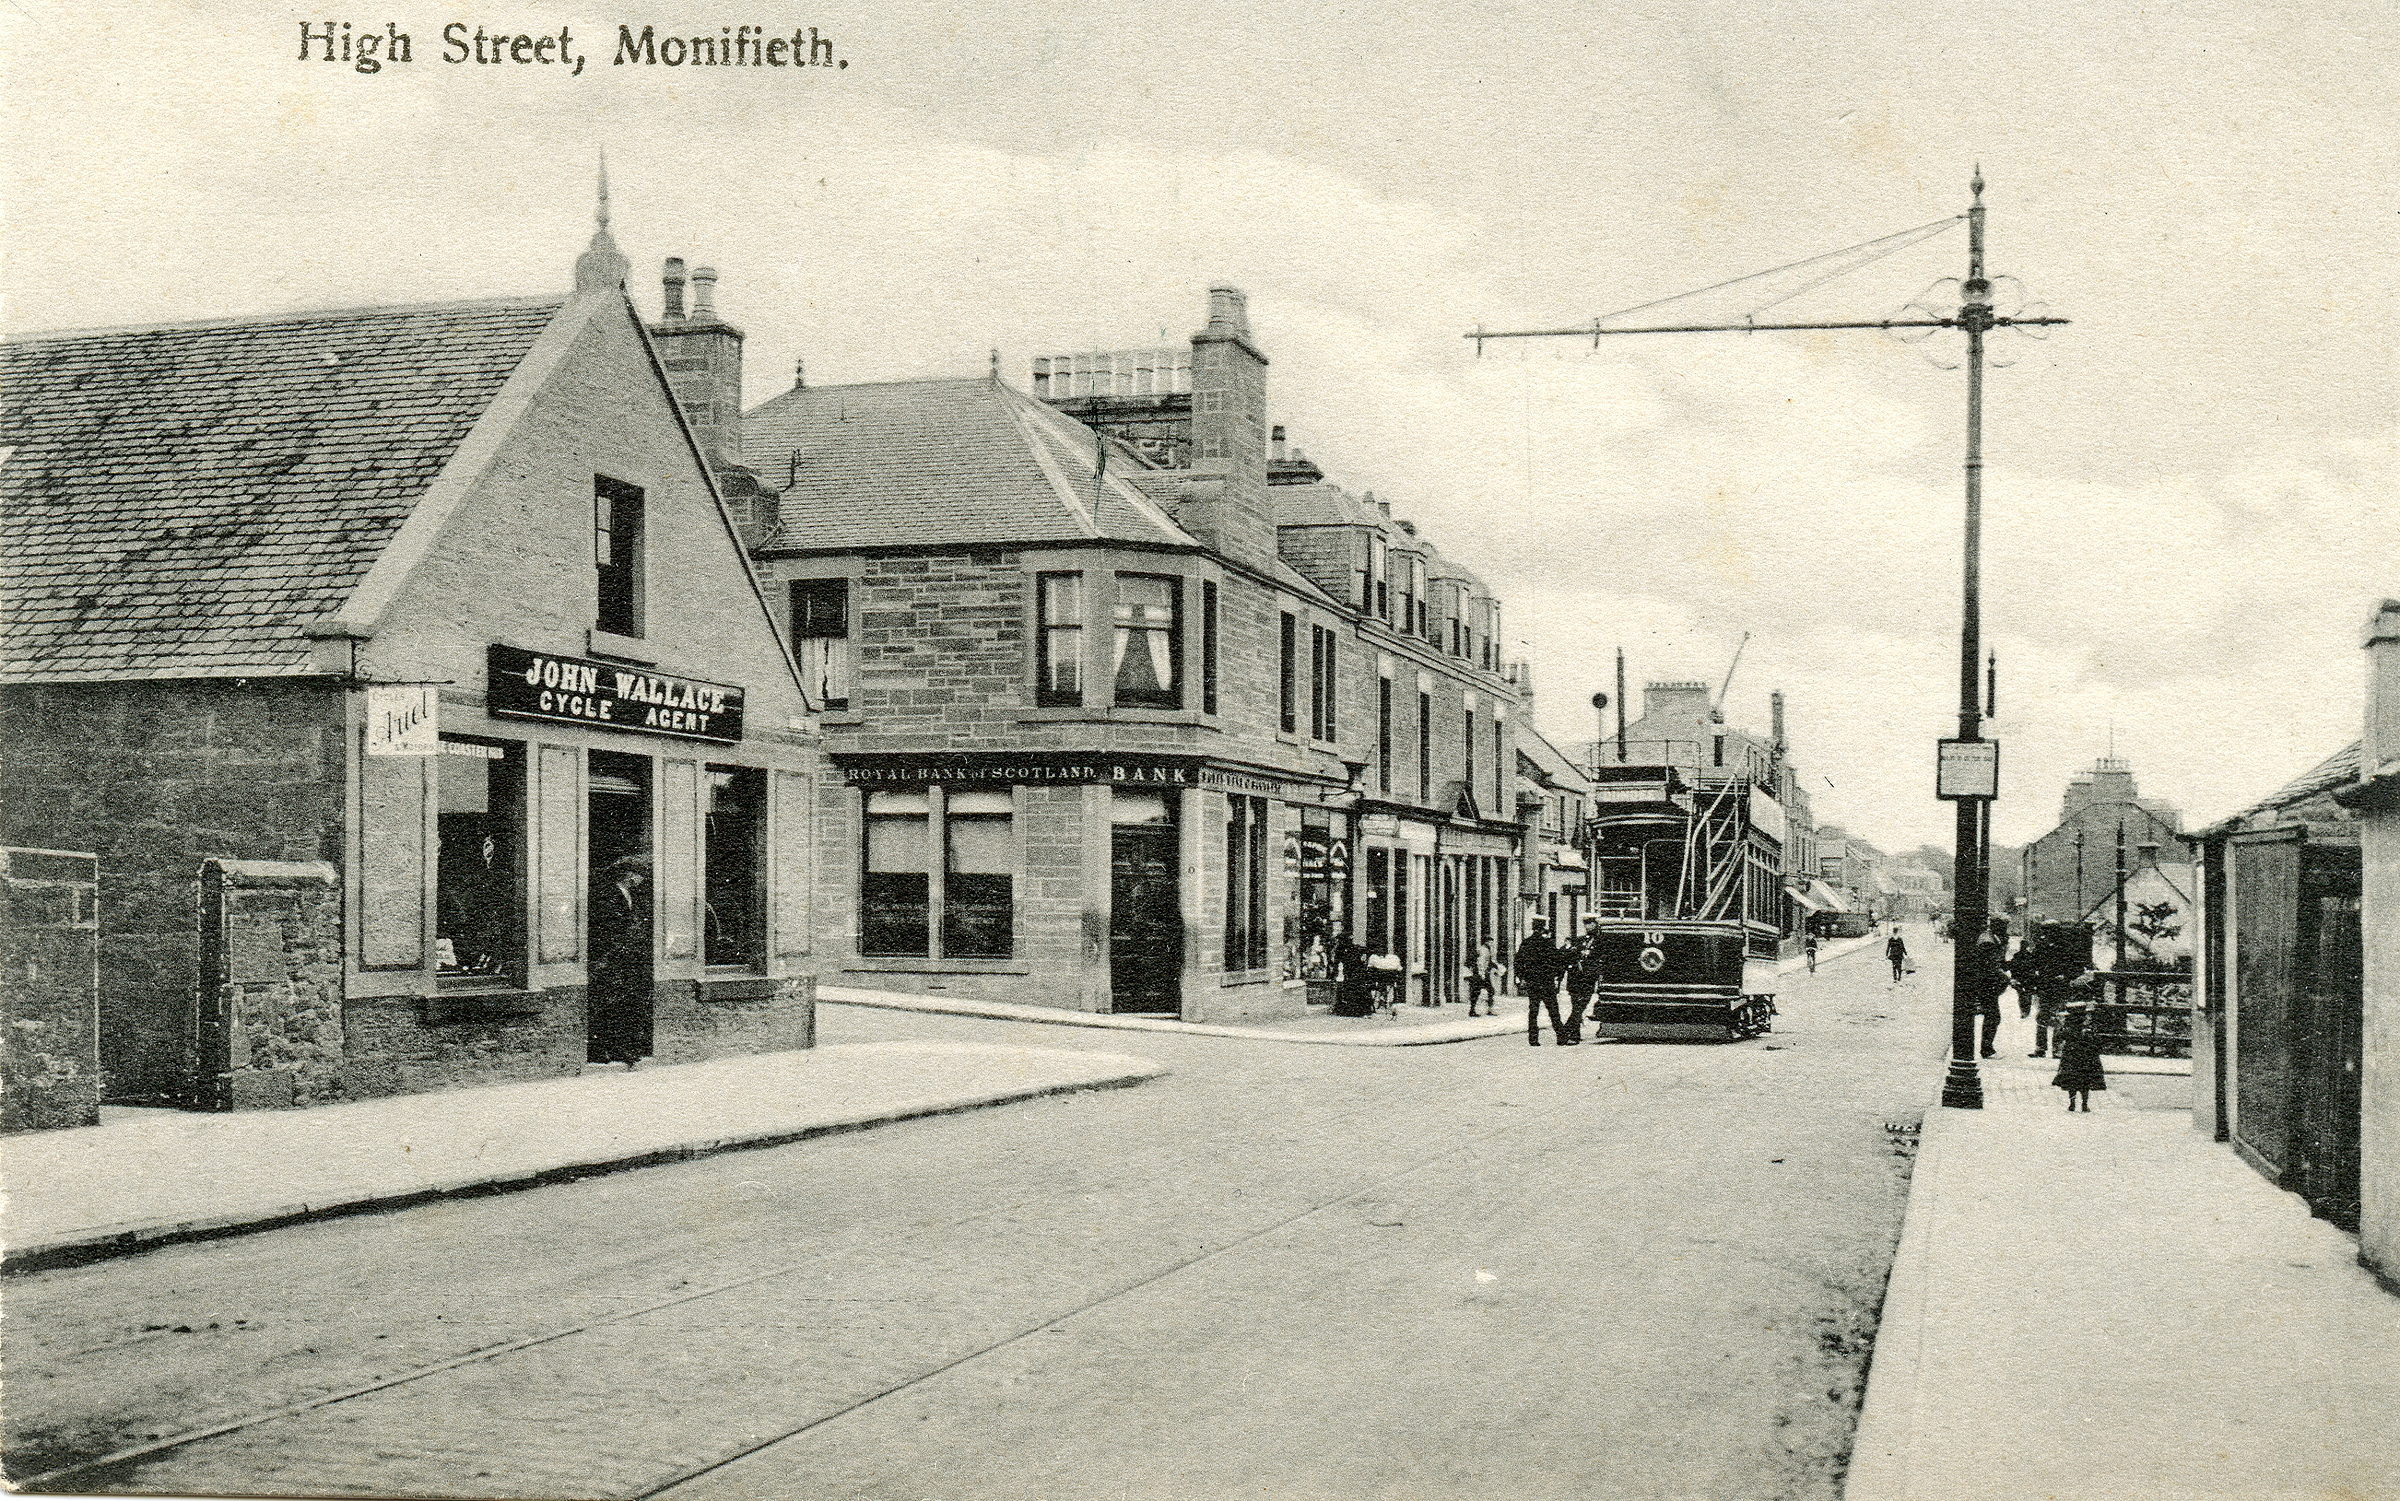 Monifieth High Street